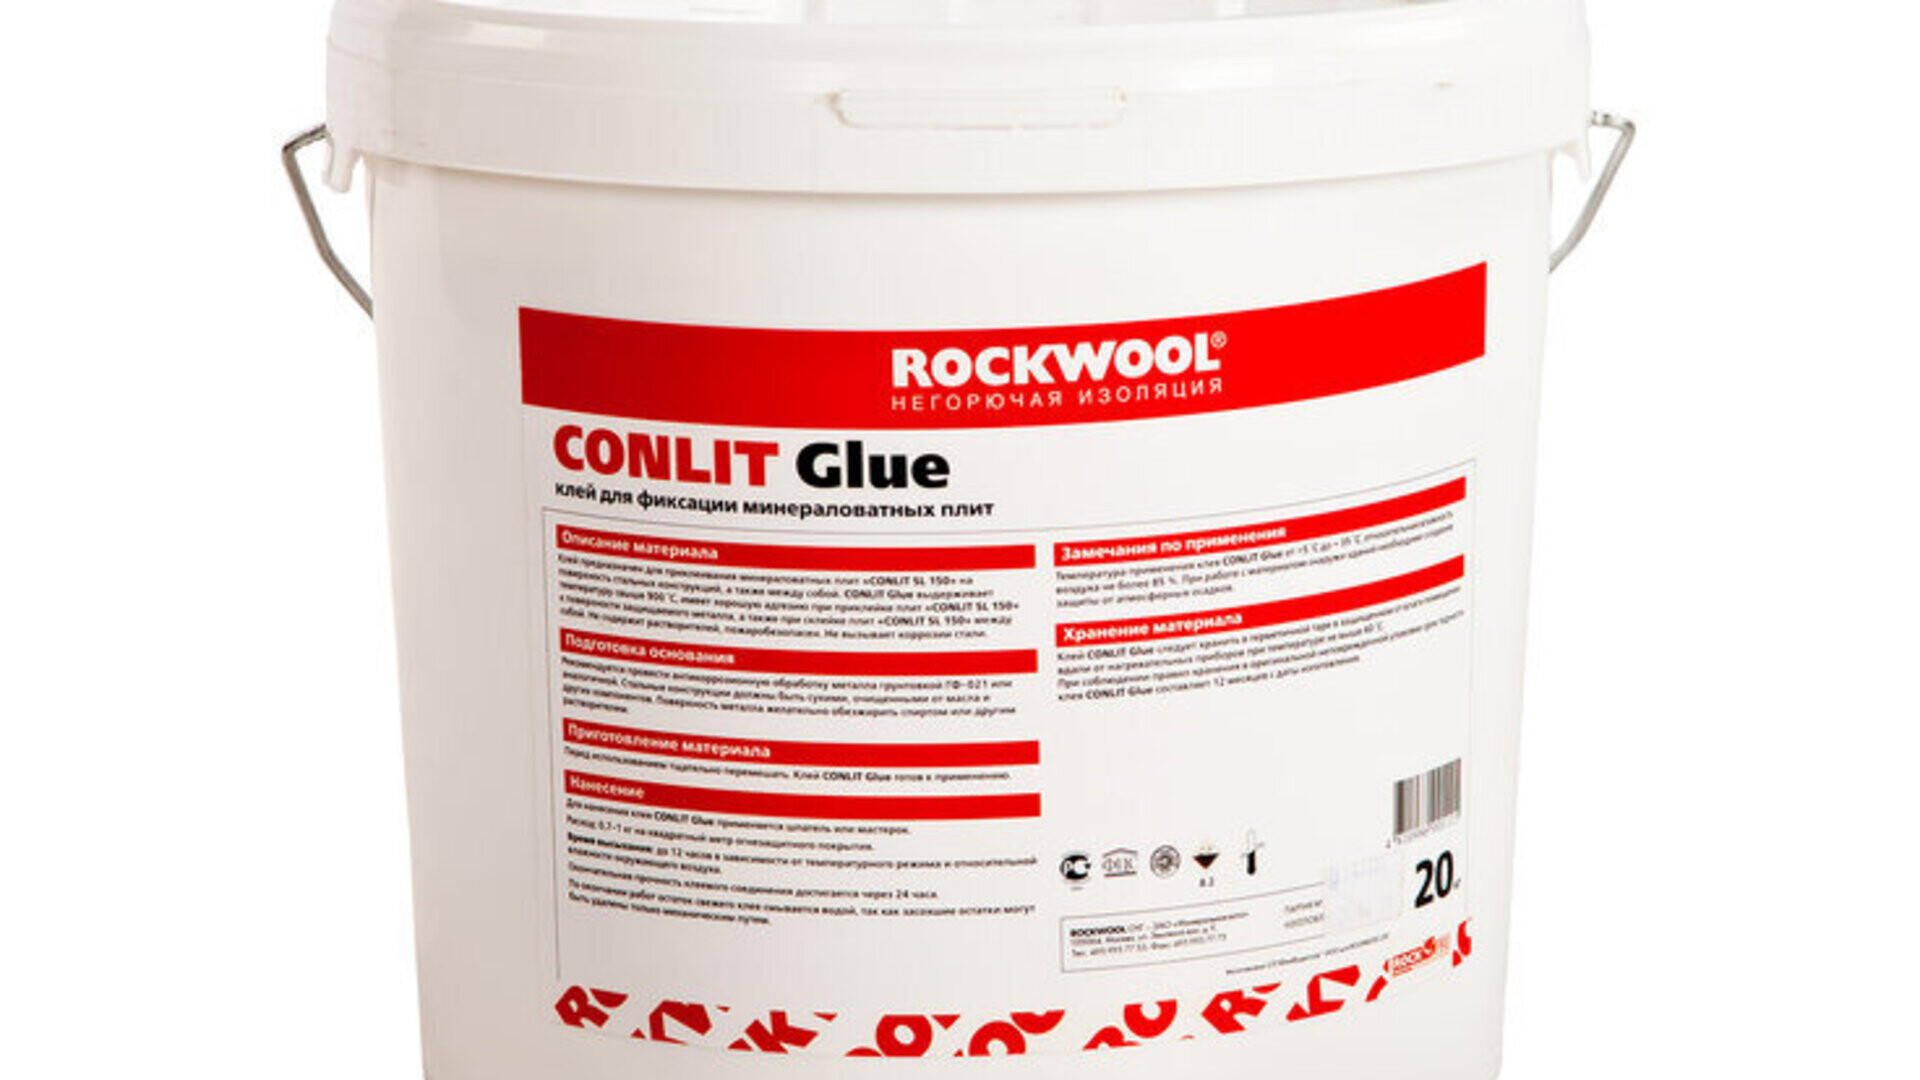 CONLIT GLUE, package, product, components, Rockfire, Fire Protection